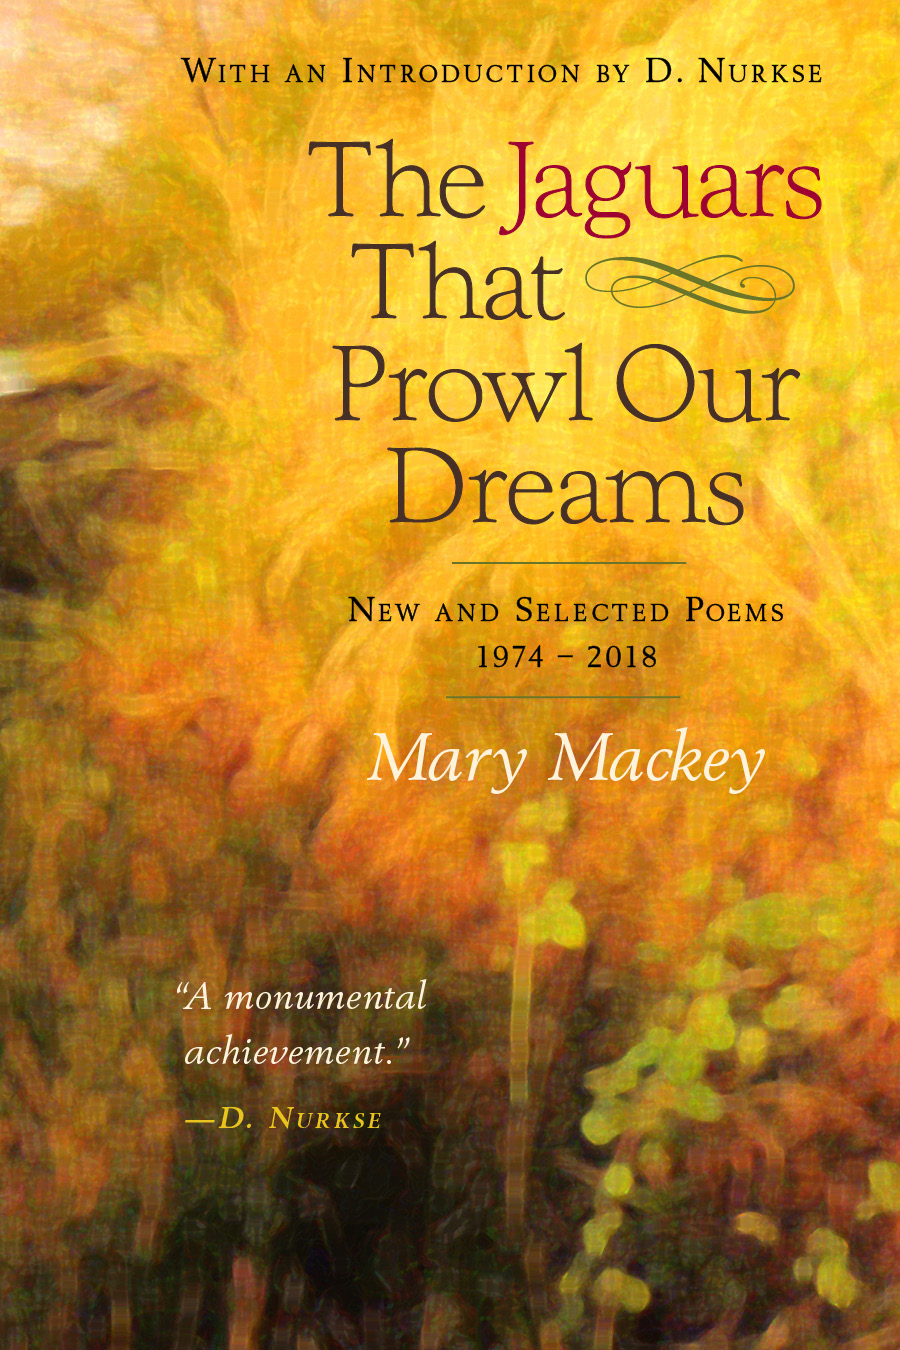 The Mystical Poetry of Mary Mackey in The Jaguars That Prowl